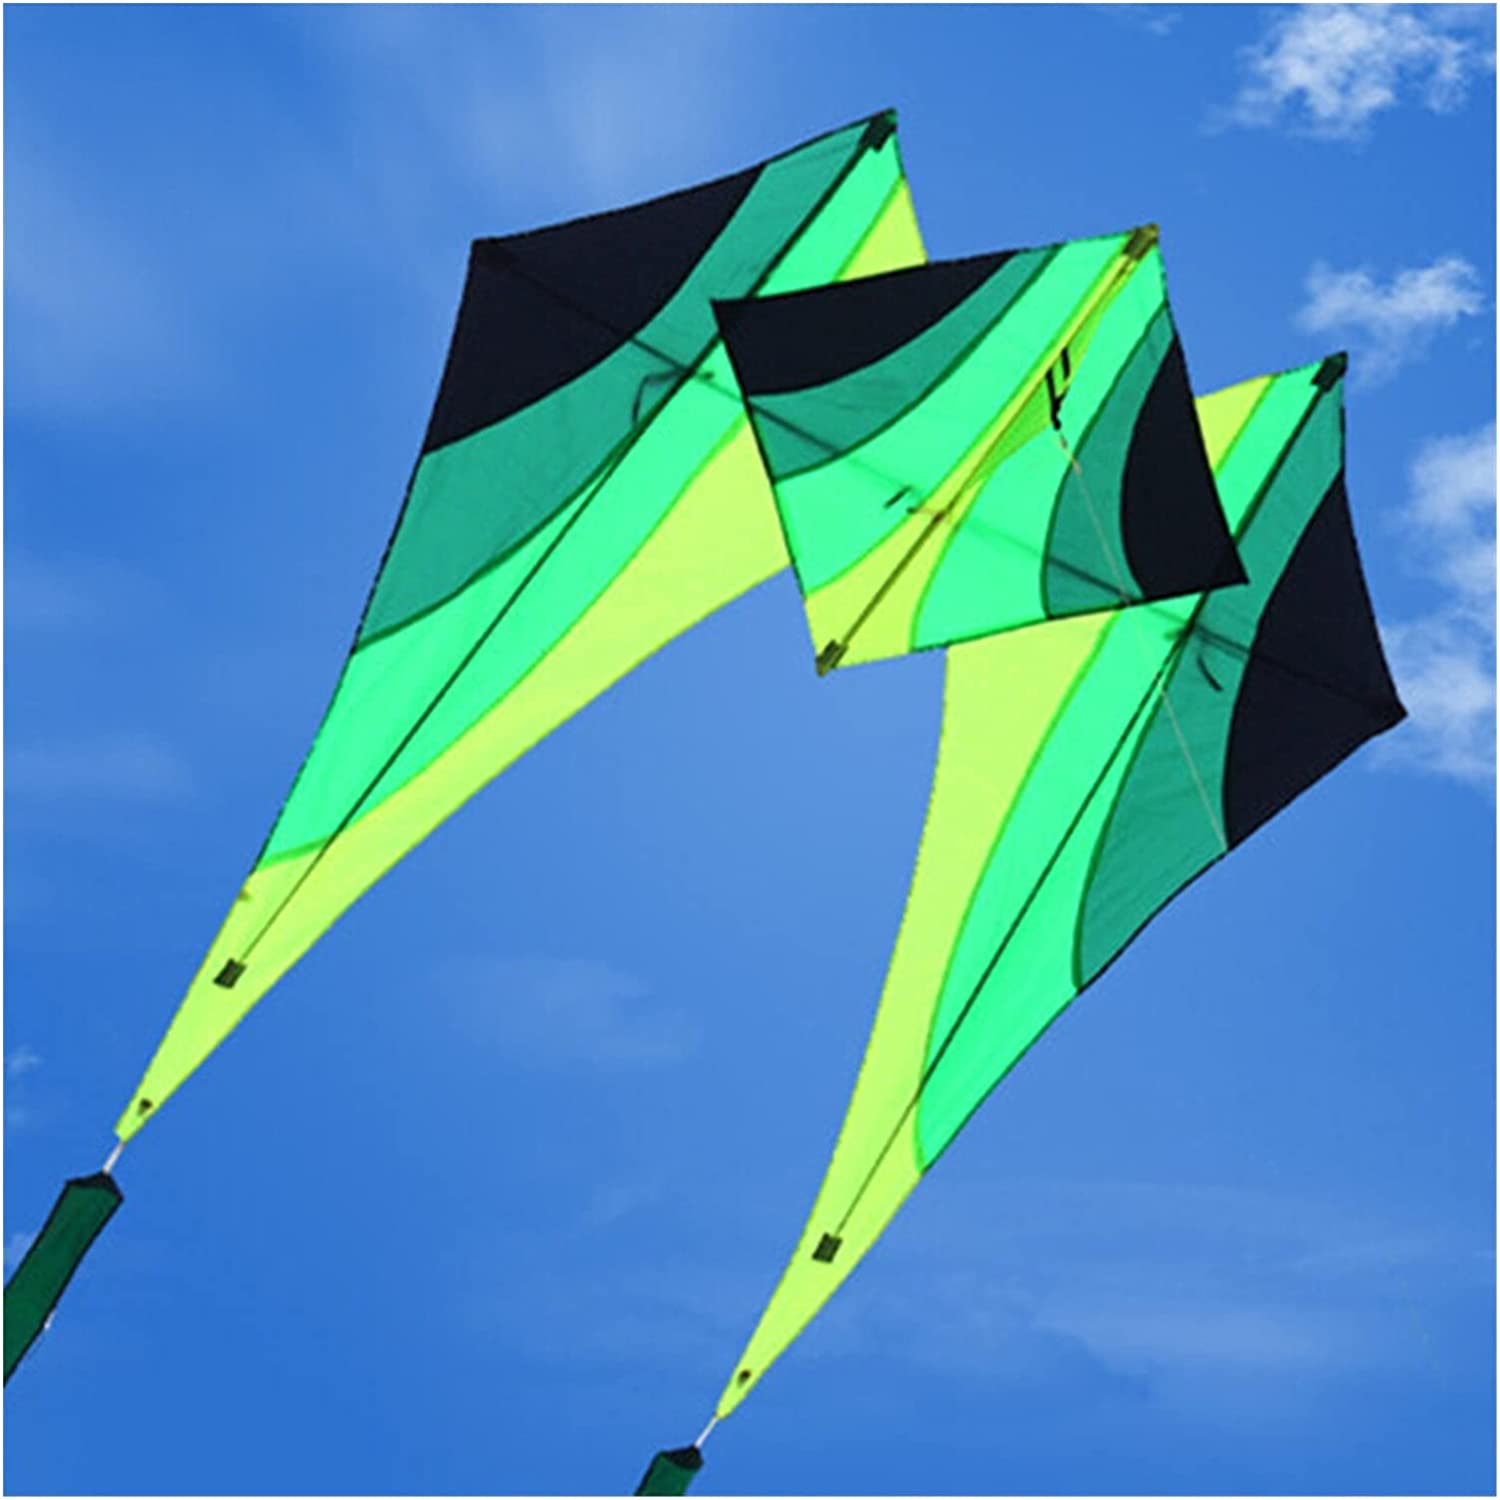 LJLWX Outdoor Kite 3D Indefinitely Nylon with Flying Kit Adult New color Toys